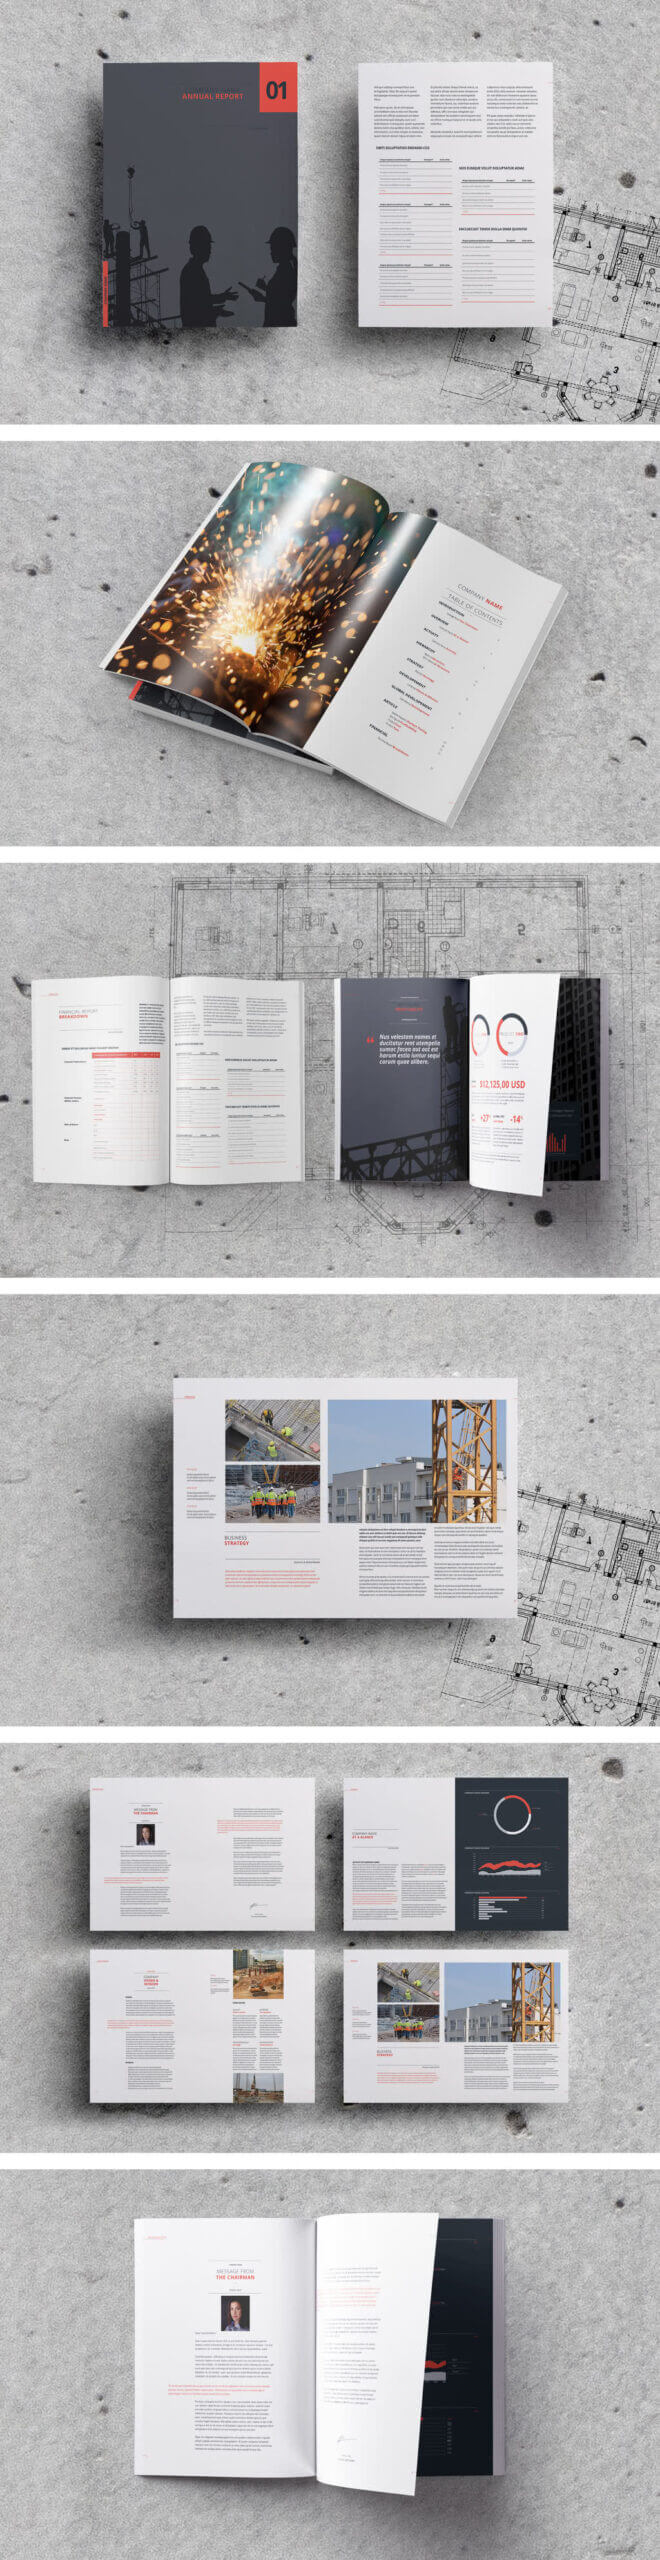 75 Fresh Indesign Templates And Where To Find More Inside Indesign Templates Free Download Brochure